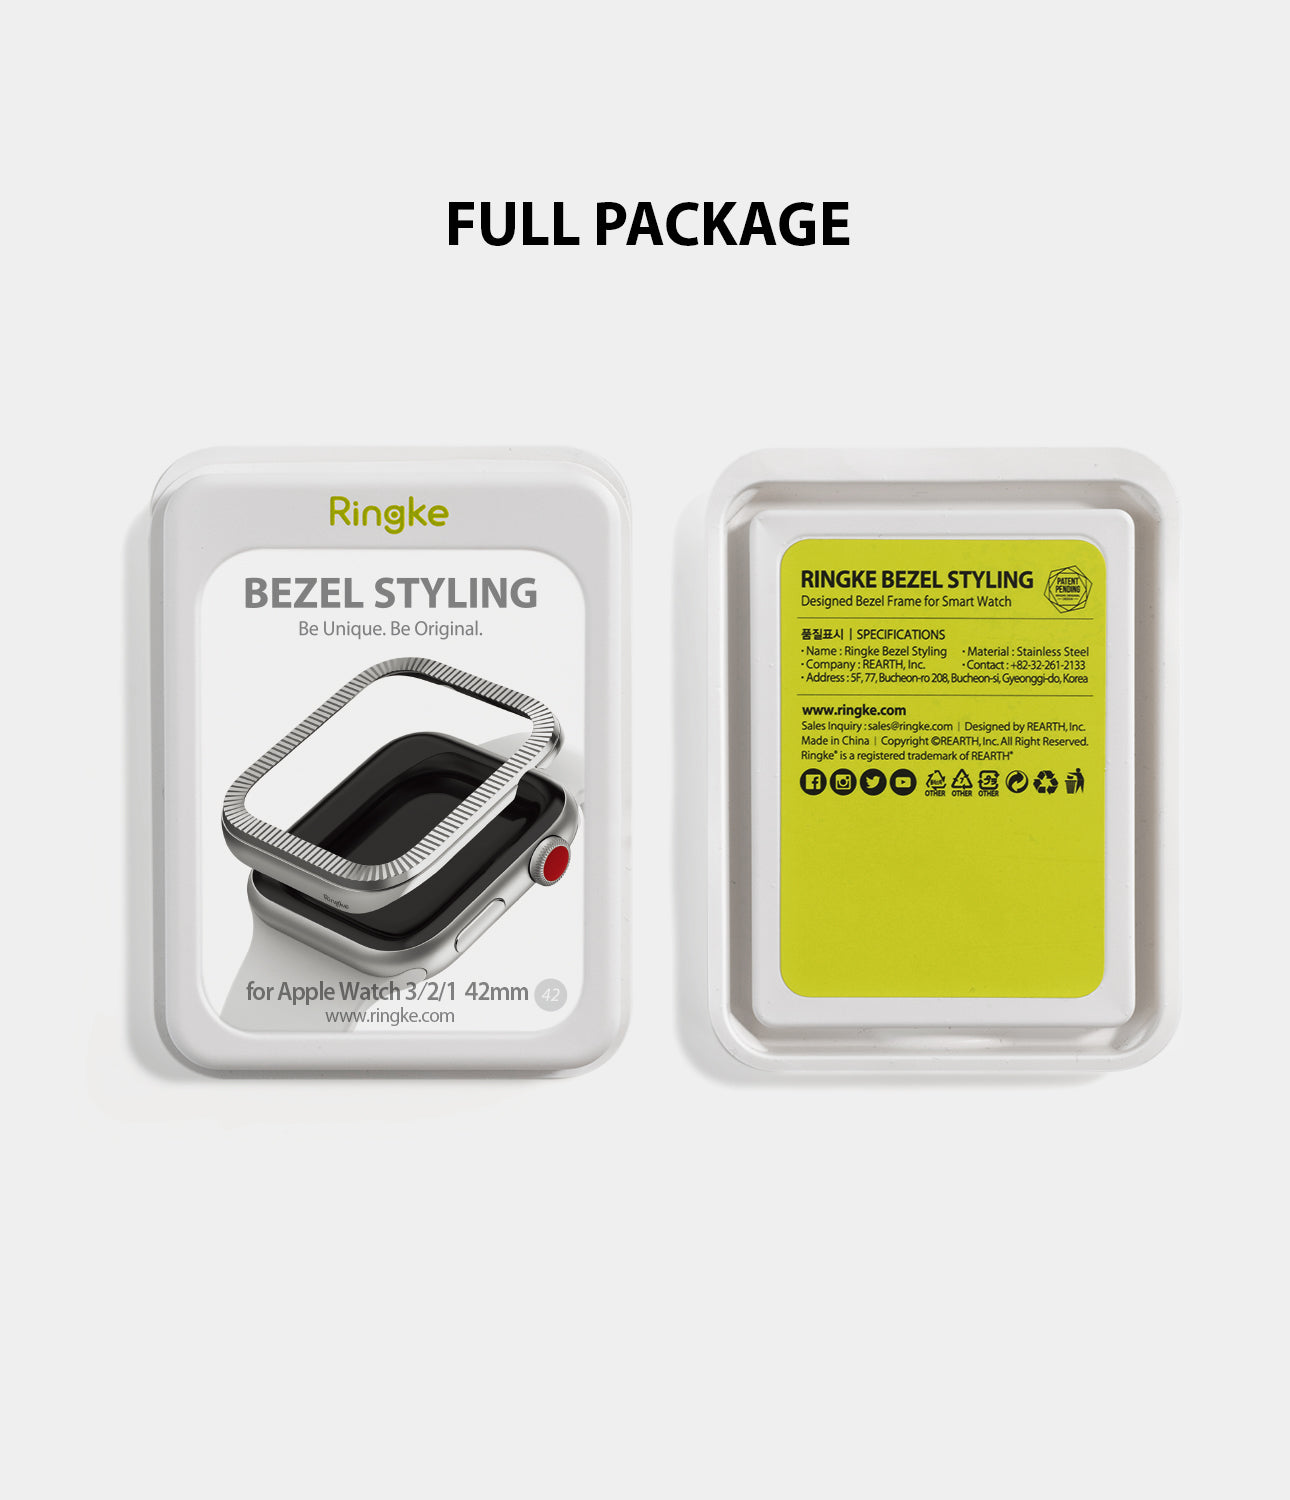 apple watch 3 2 1 42mm case ringke bezel styling stainless steel frame cover 42-42 simple installation